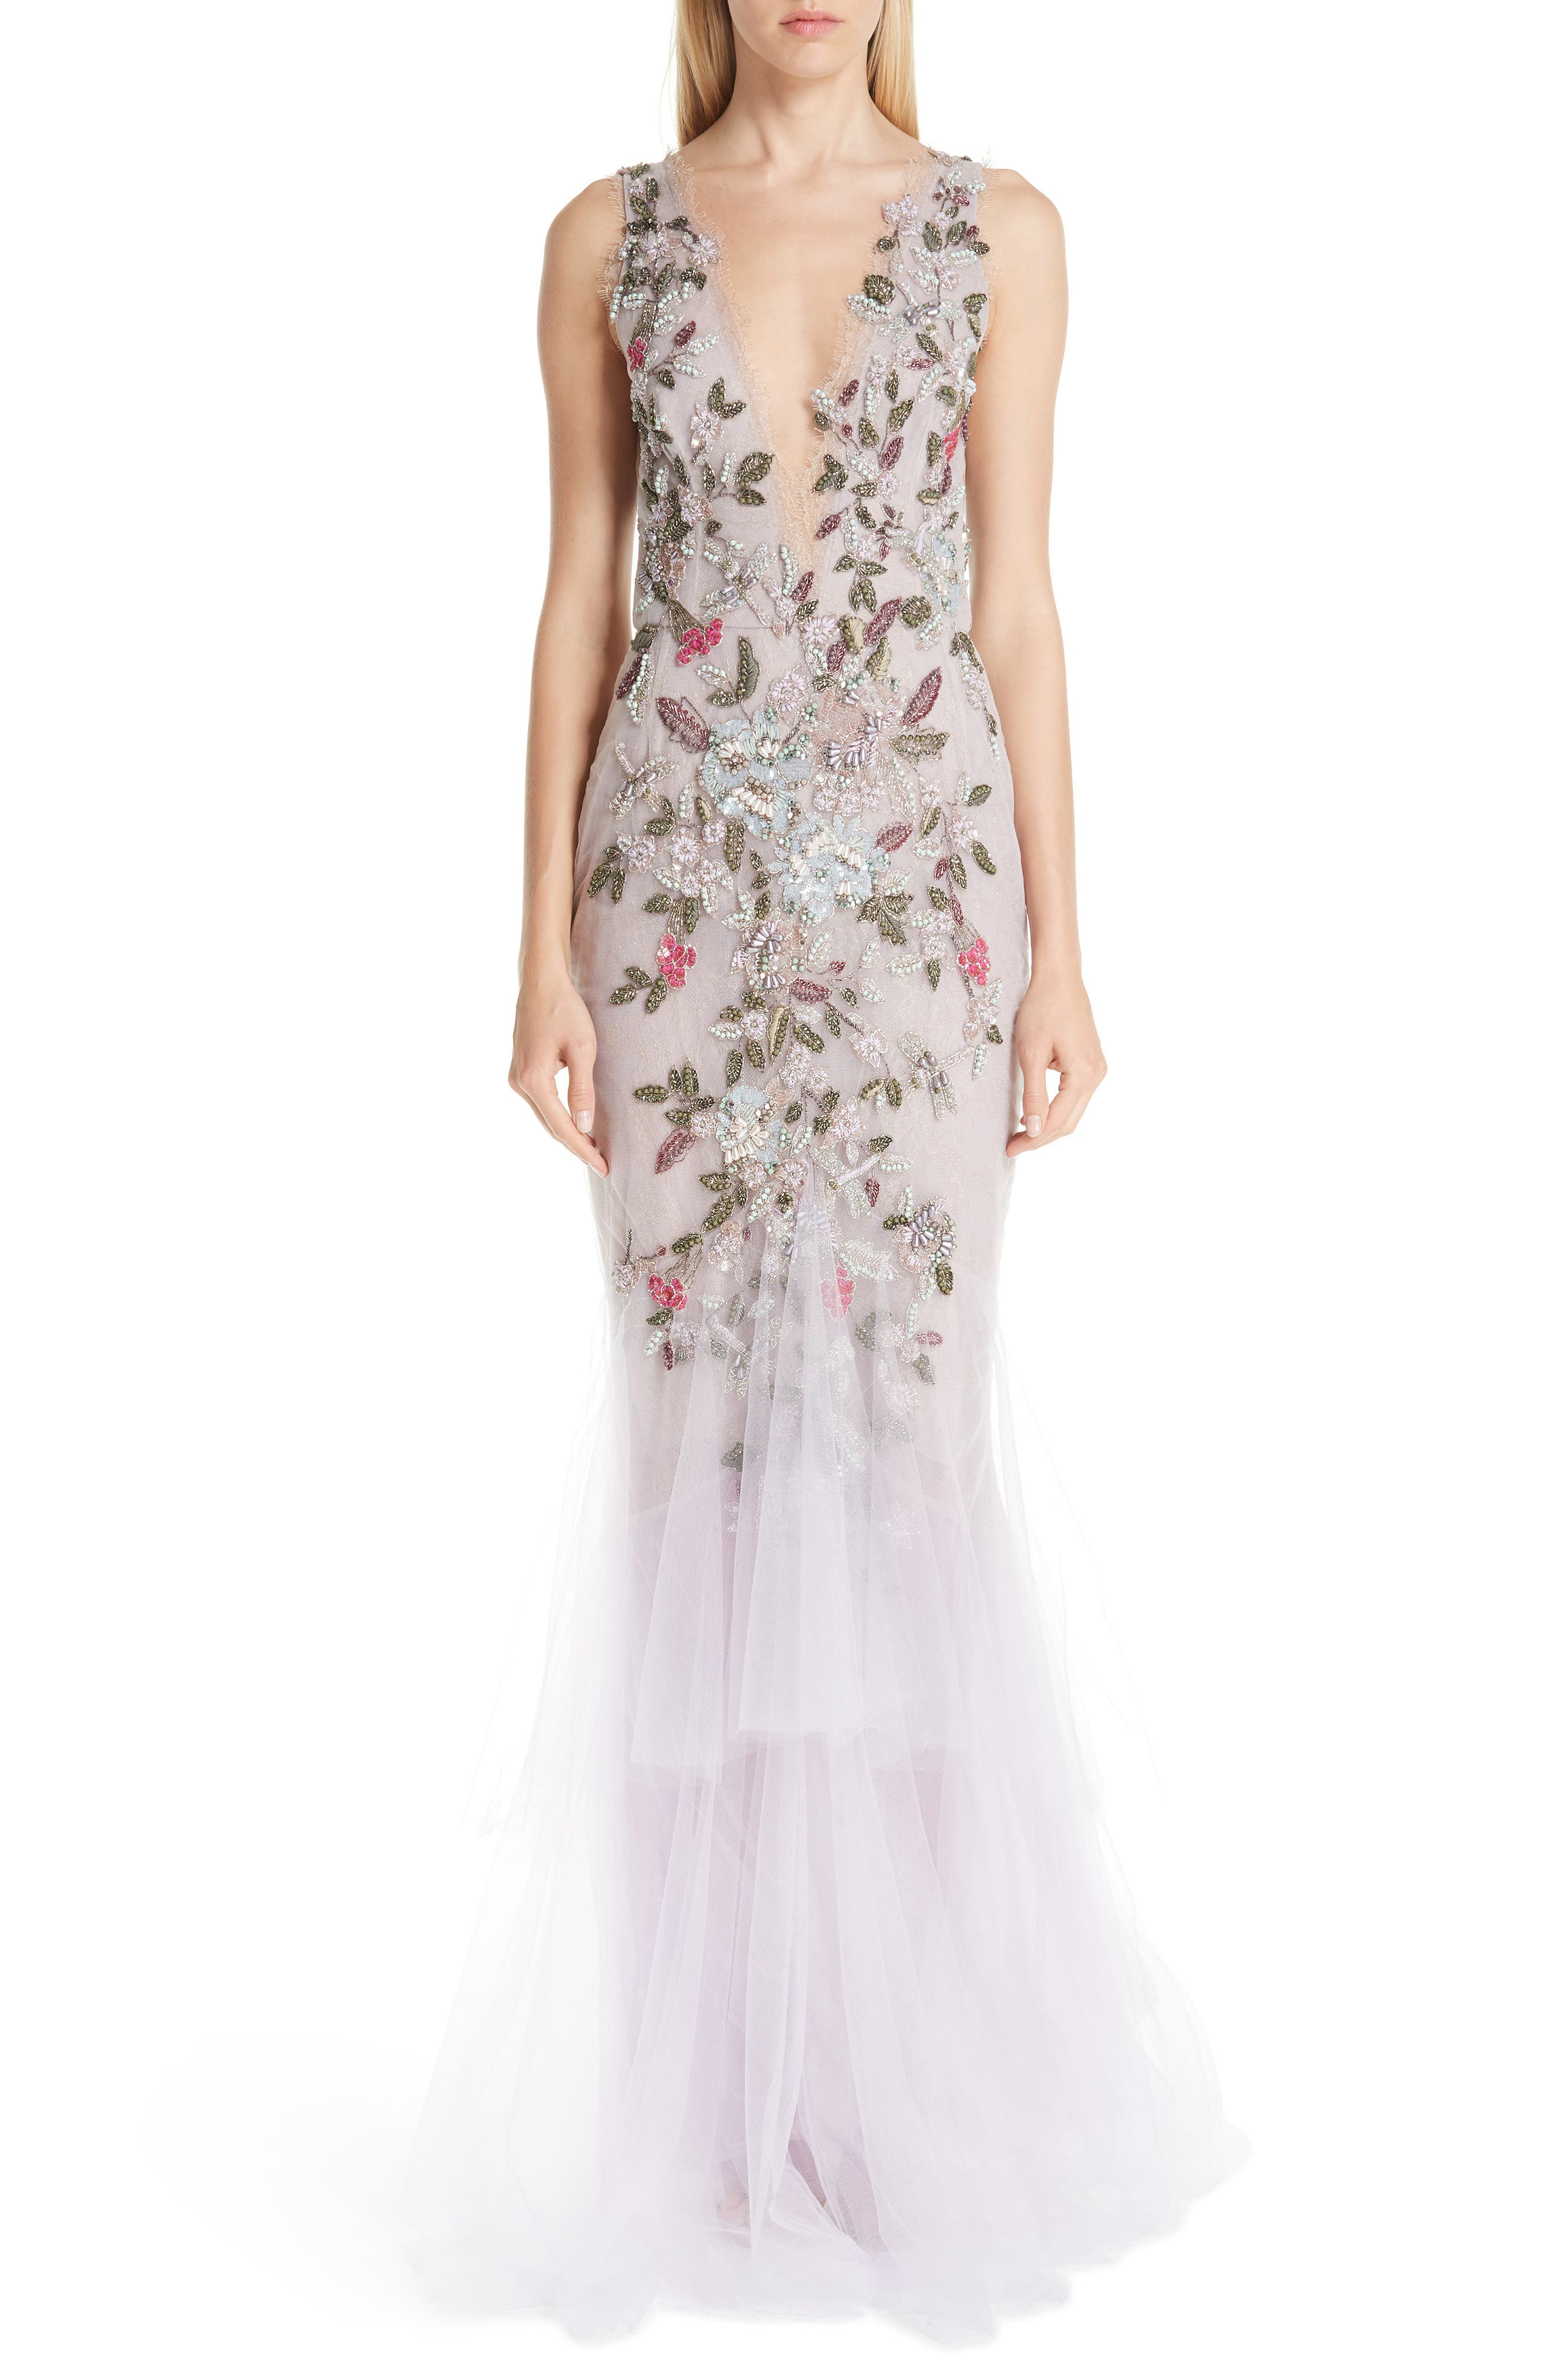 MARCHESA, Embroidered Floral Evening Dress, Main thumbnail 1, color, LILAC